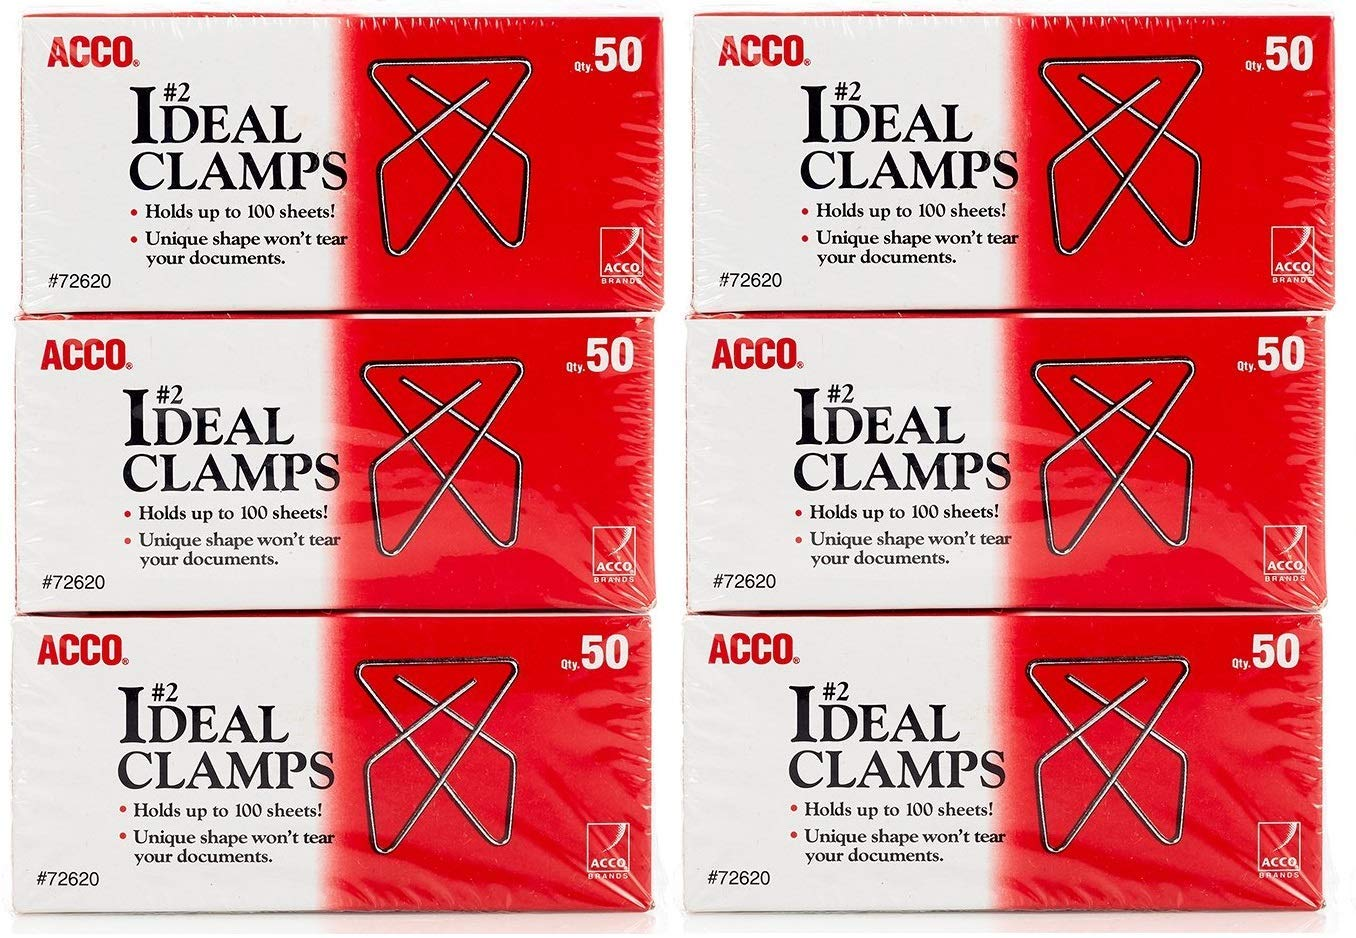 ACCO Ideal Paper Clamp/Butterfly Clamp, Smooth, 2 Size(Small), 50/Box, 3-Pack (150 Clamps Total) (A7072643)